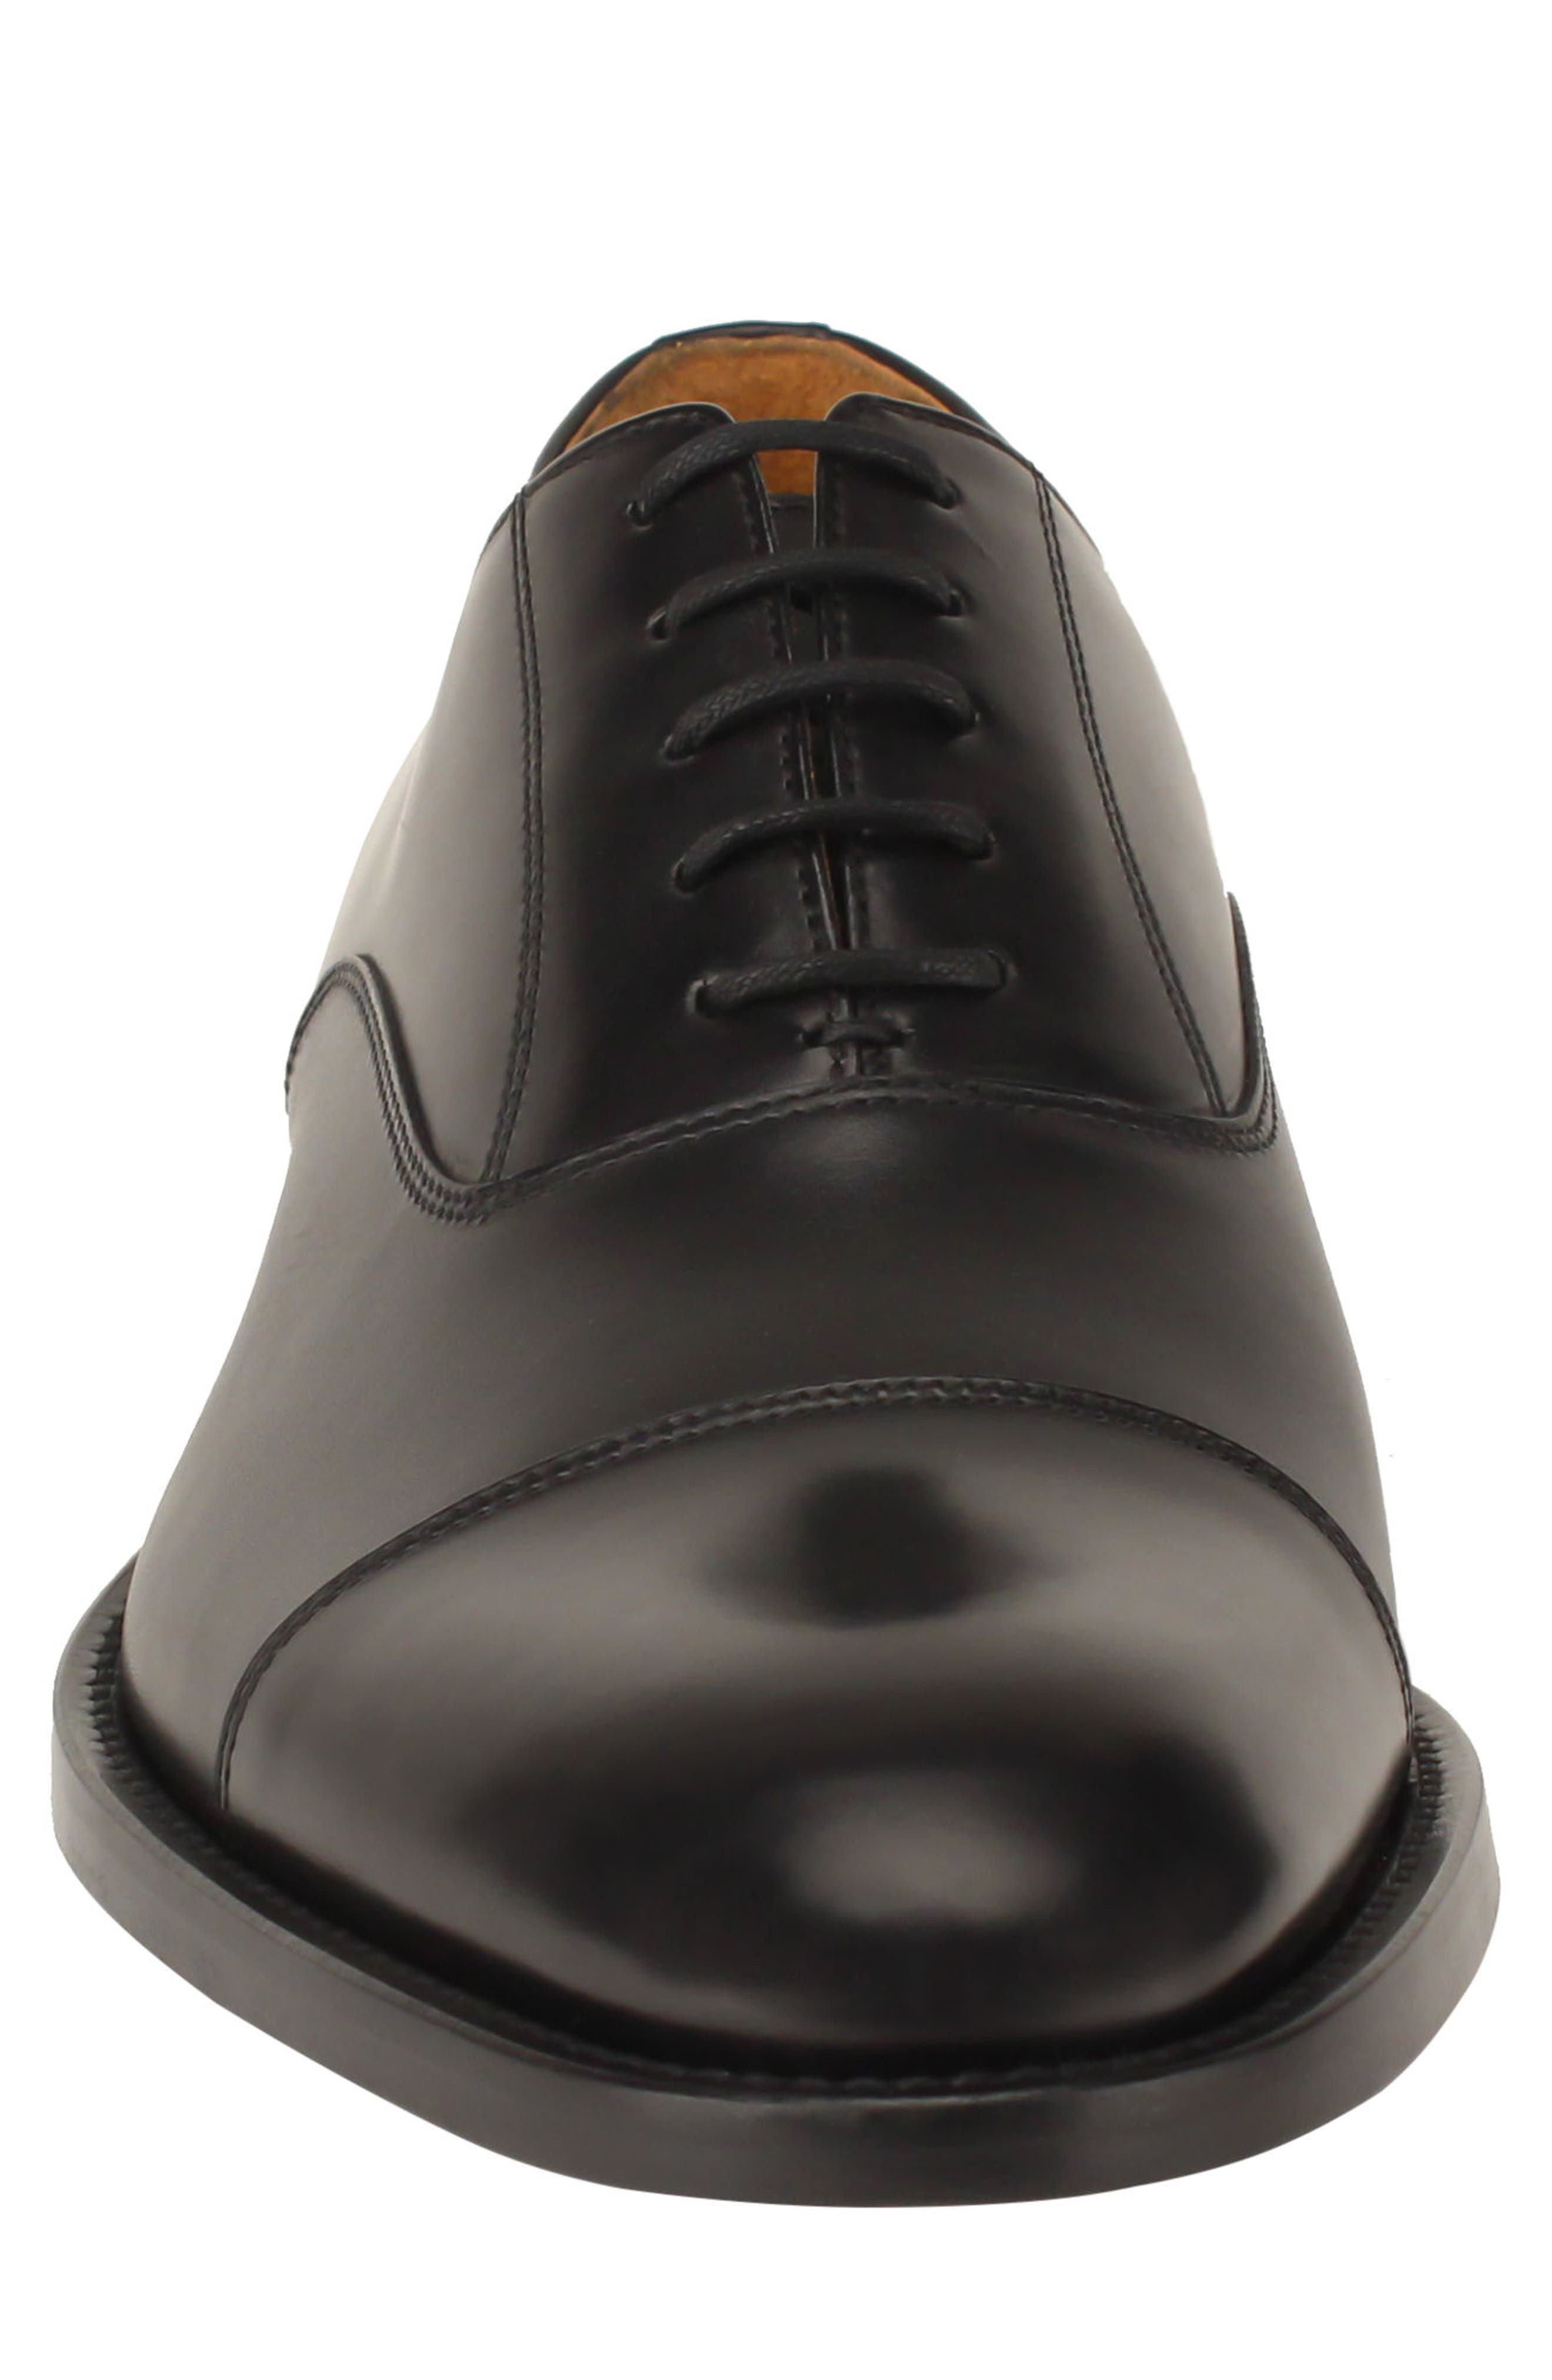 Nathan Cap Toe Oxford,                             Alternate thumbnail 5, color,                             Black Leather